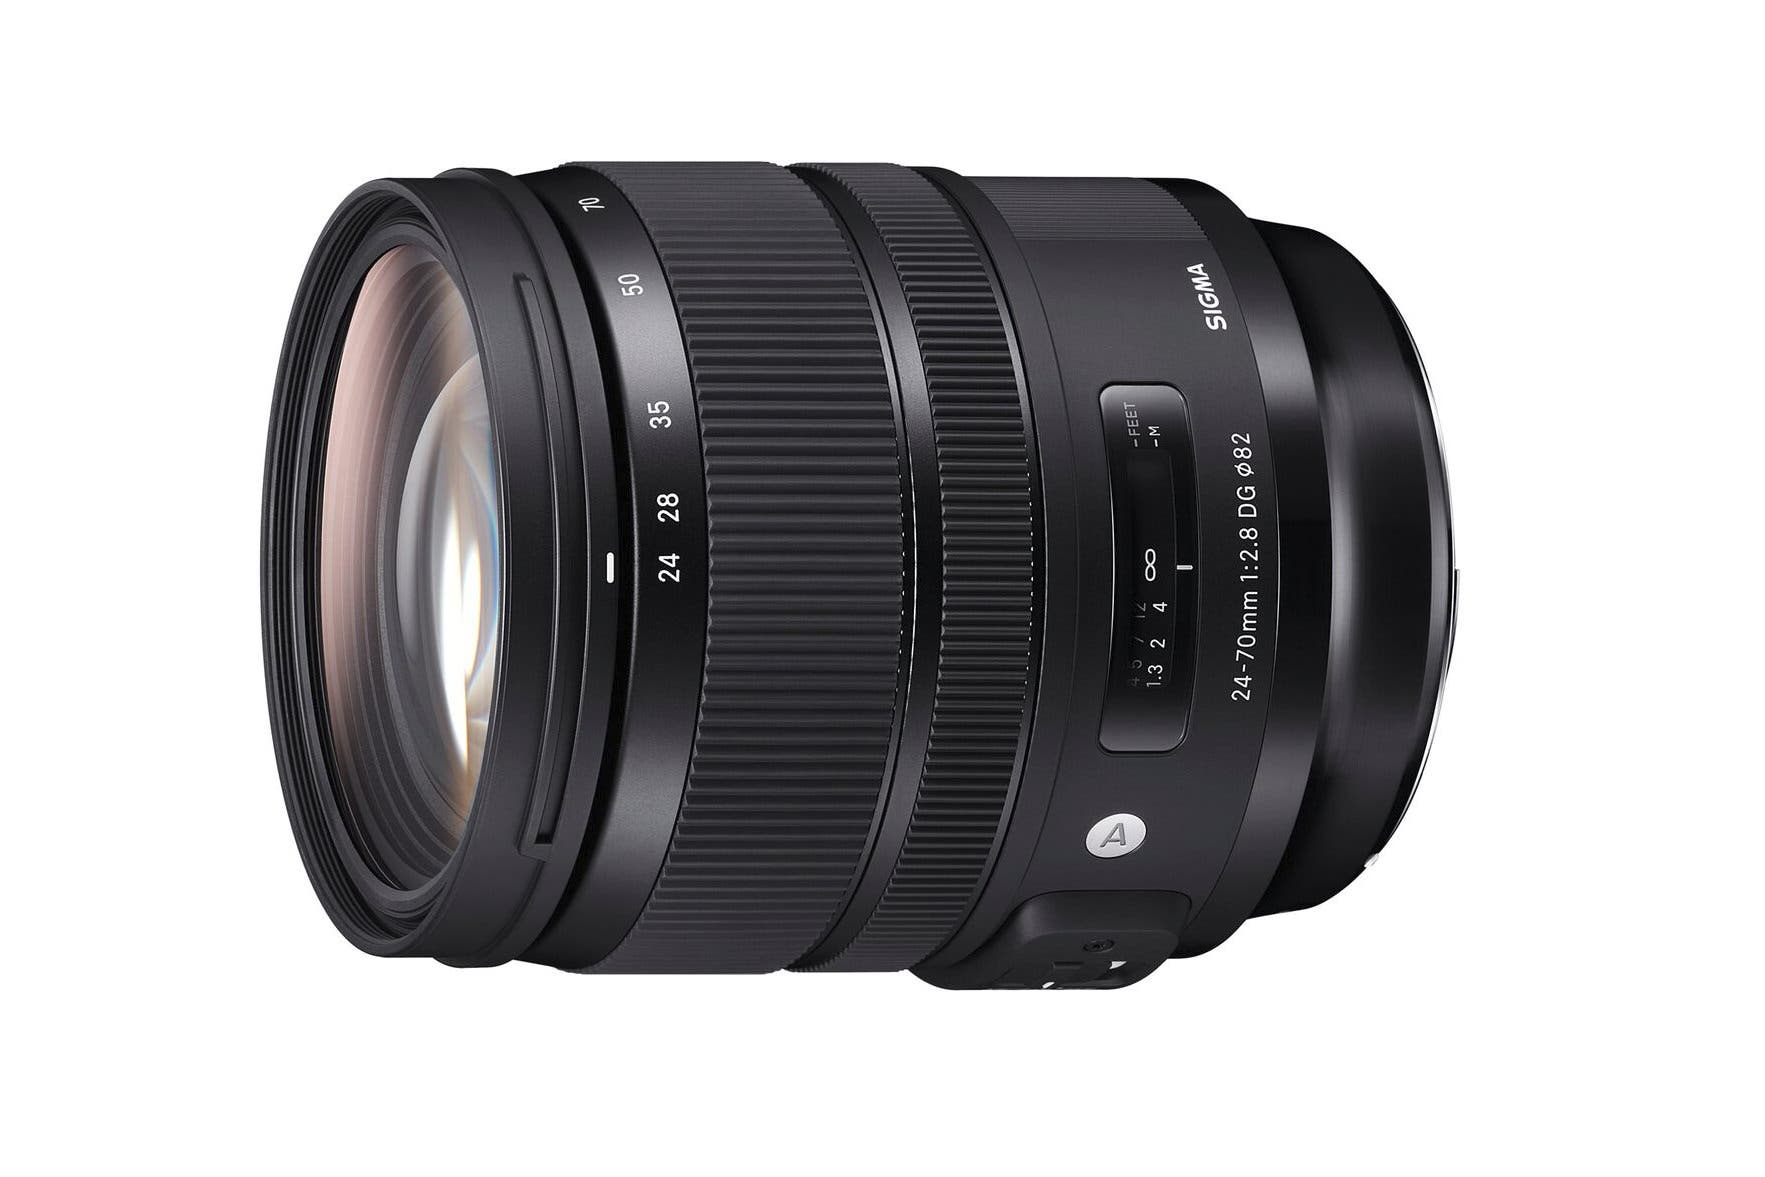 Sigma Announces New 24-70mm and 100-400mm Zoom Lenses